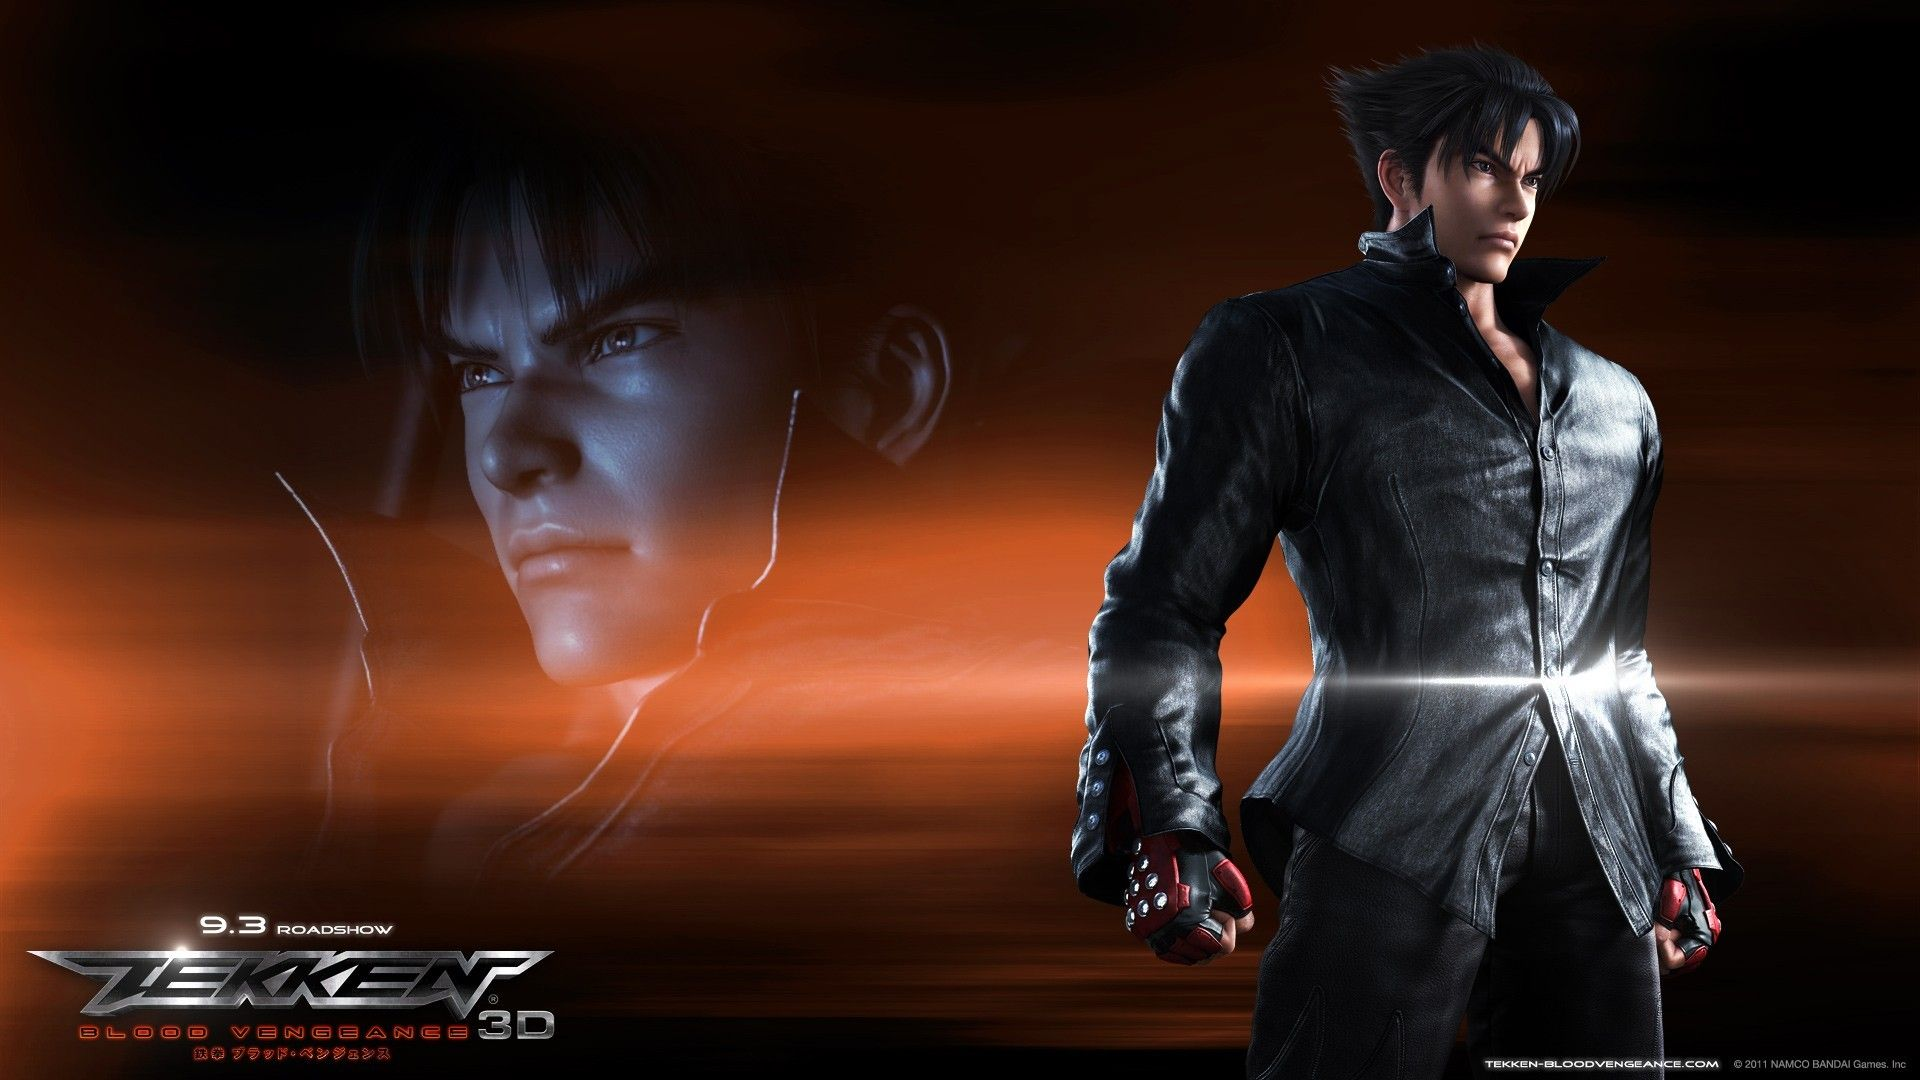 Jin Kazama Hd Wallpapers Get Free Top Quality Jin Kazama Hd